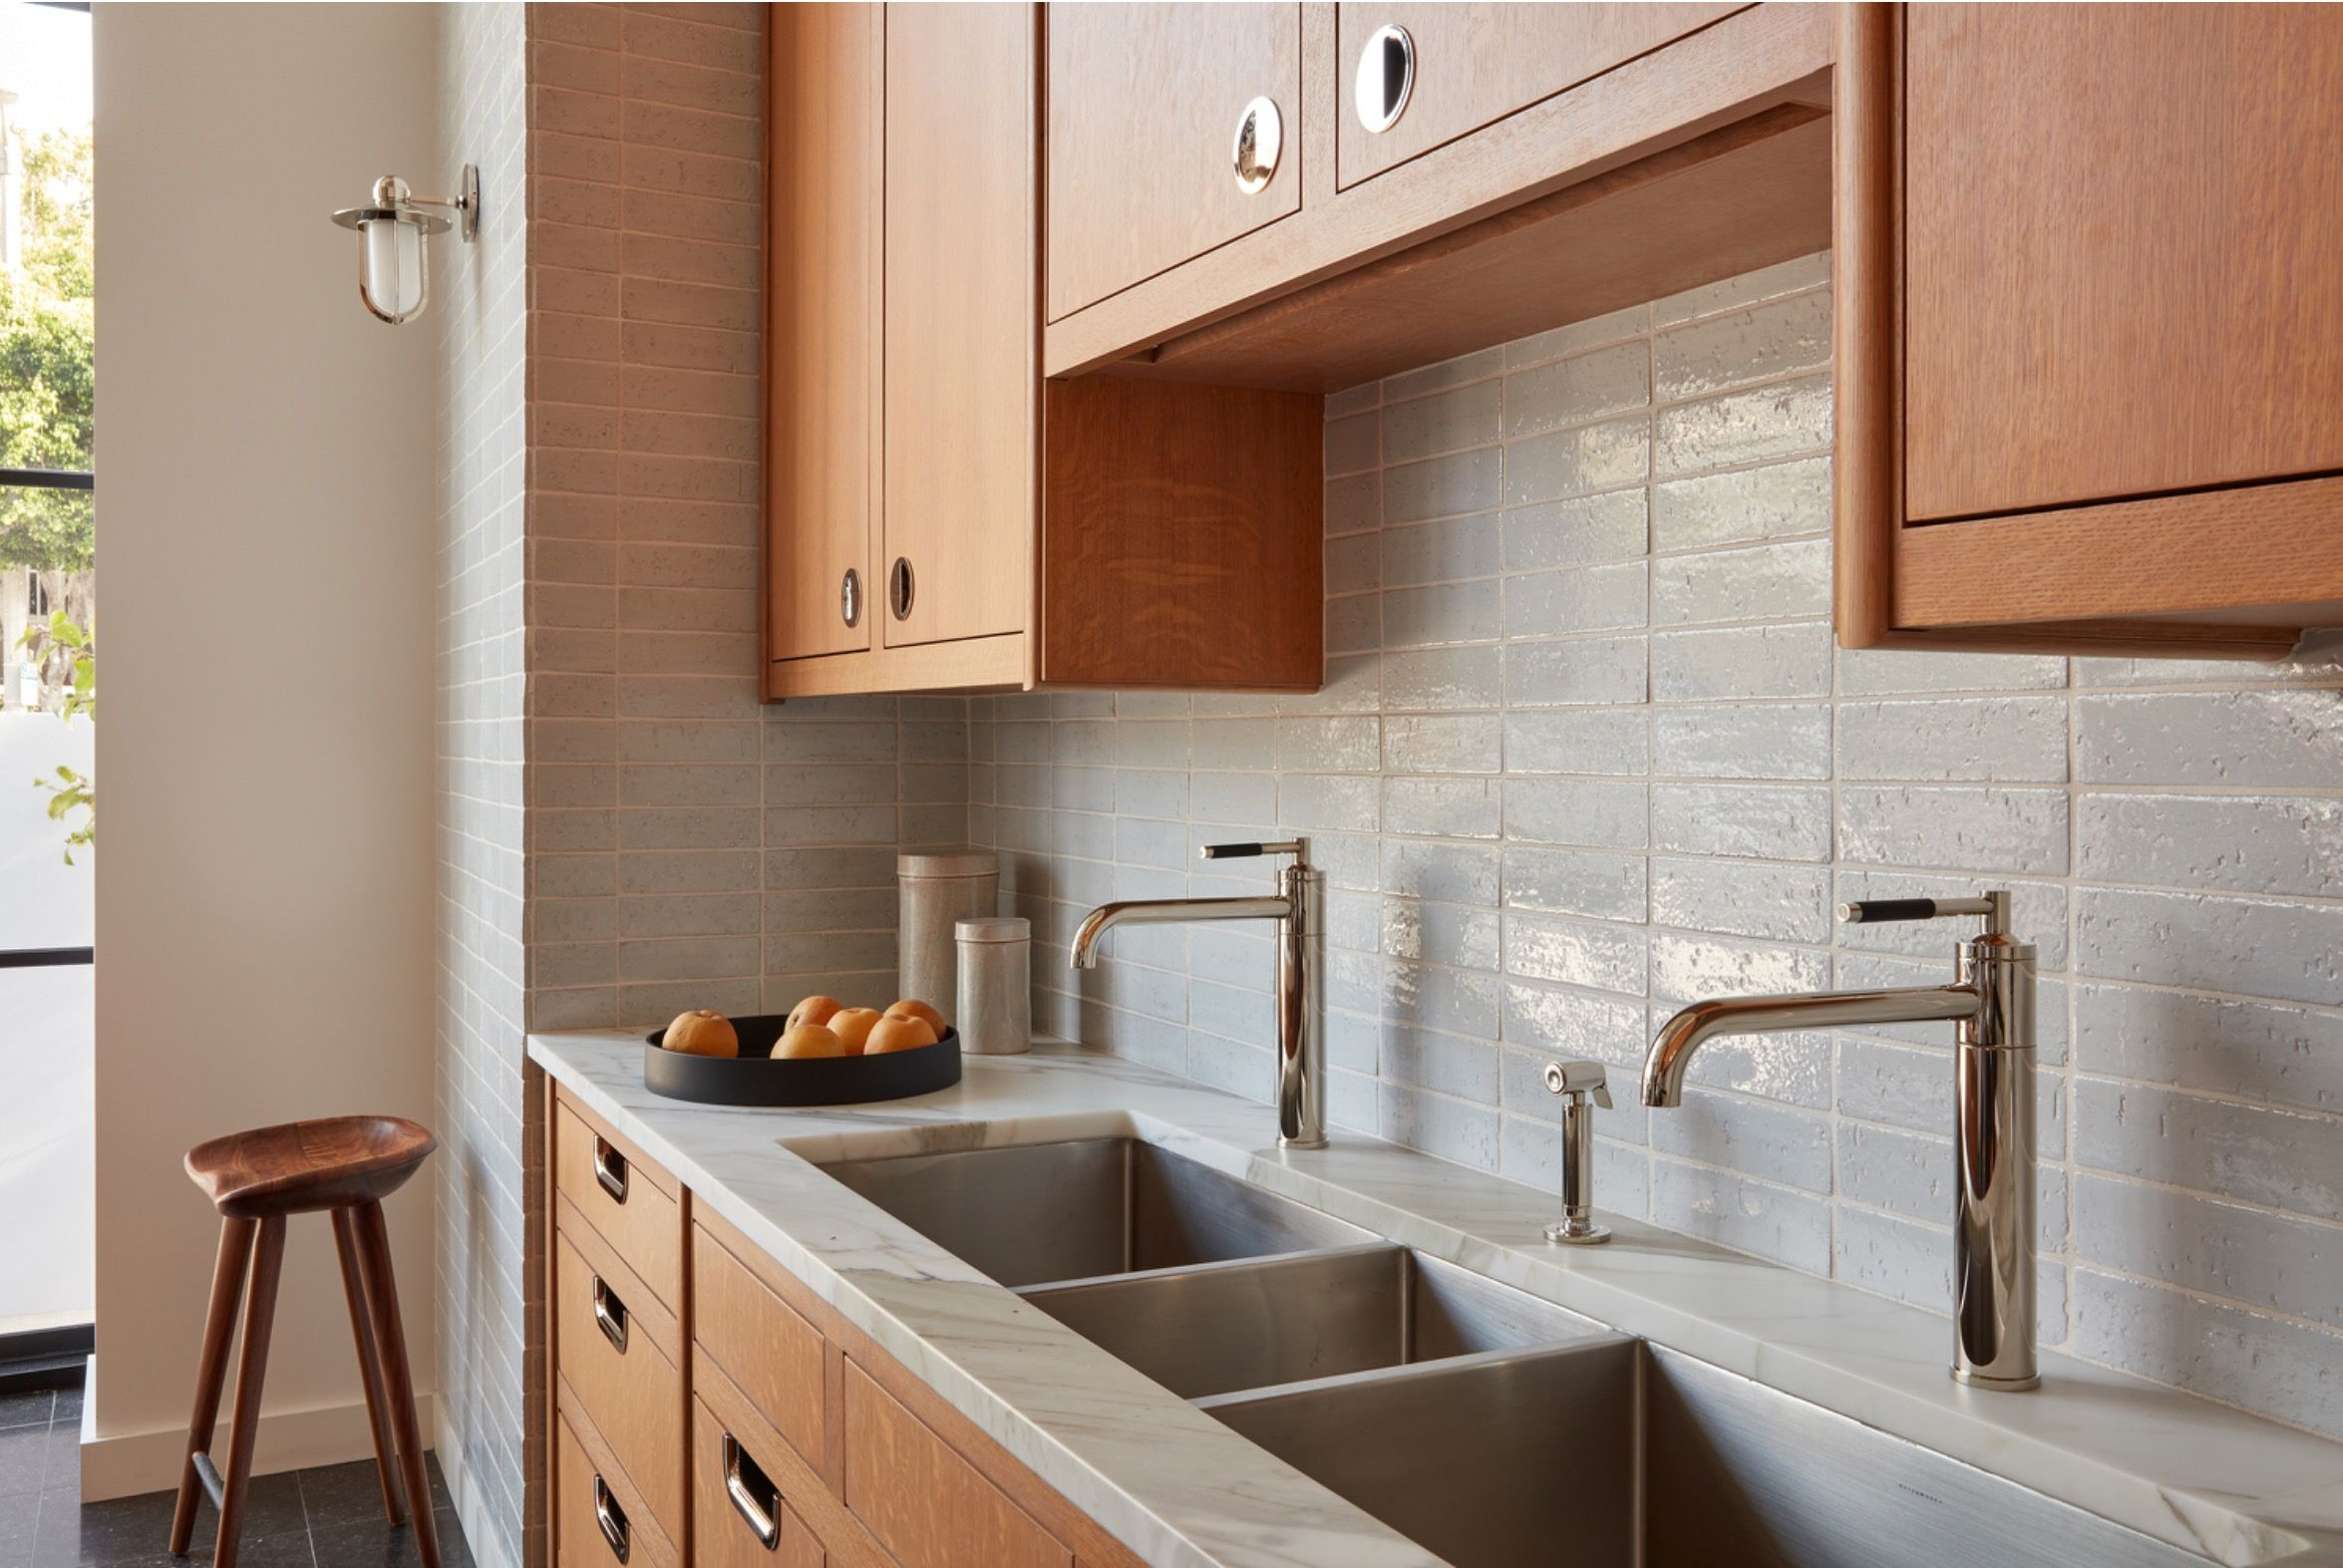 Pin By Amsa Showroom On Waterworks Kitchen Bar Fixtures Kitchen Countertops Kitchen Faucet Kitchen Cabinet Remodel